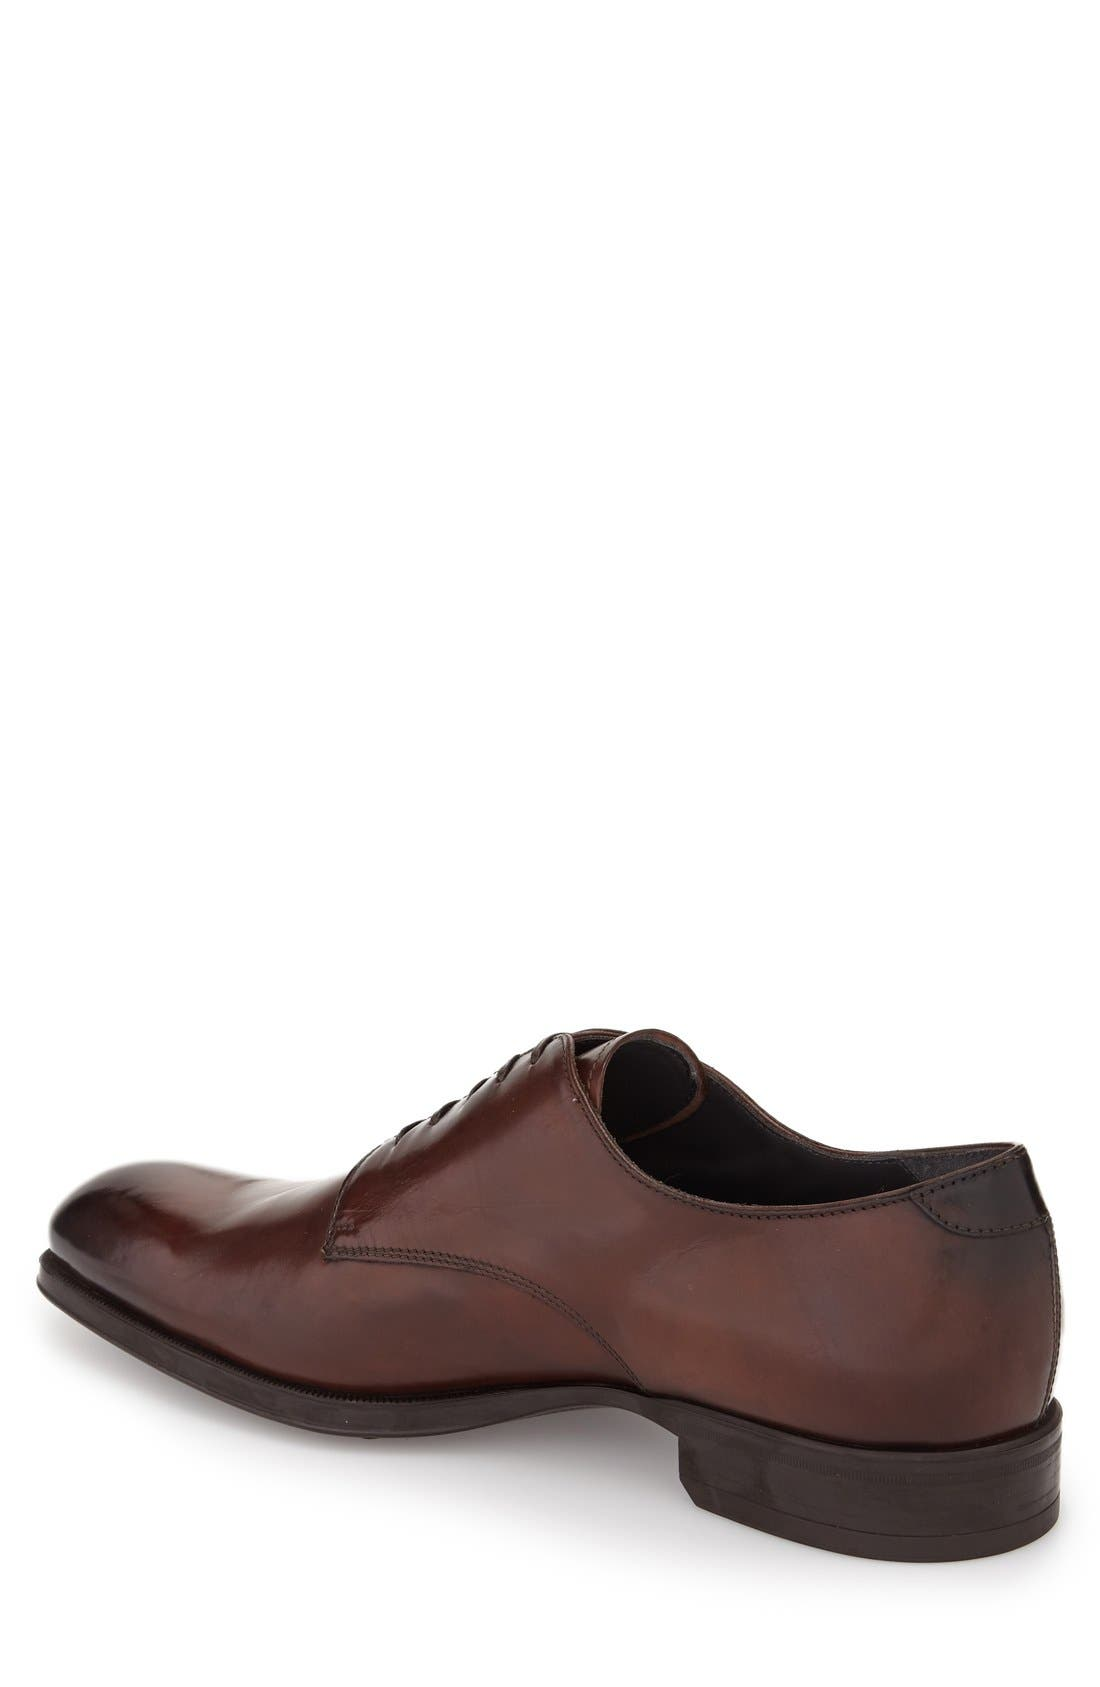 'Buchanan' Plain Toe Derby,                             Alternate thumbnail 2, color,                             Mogano